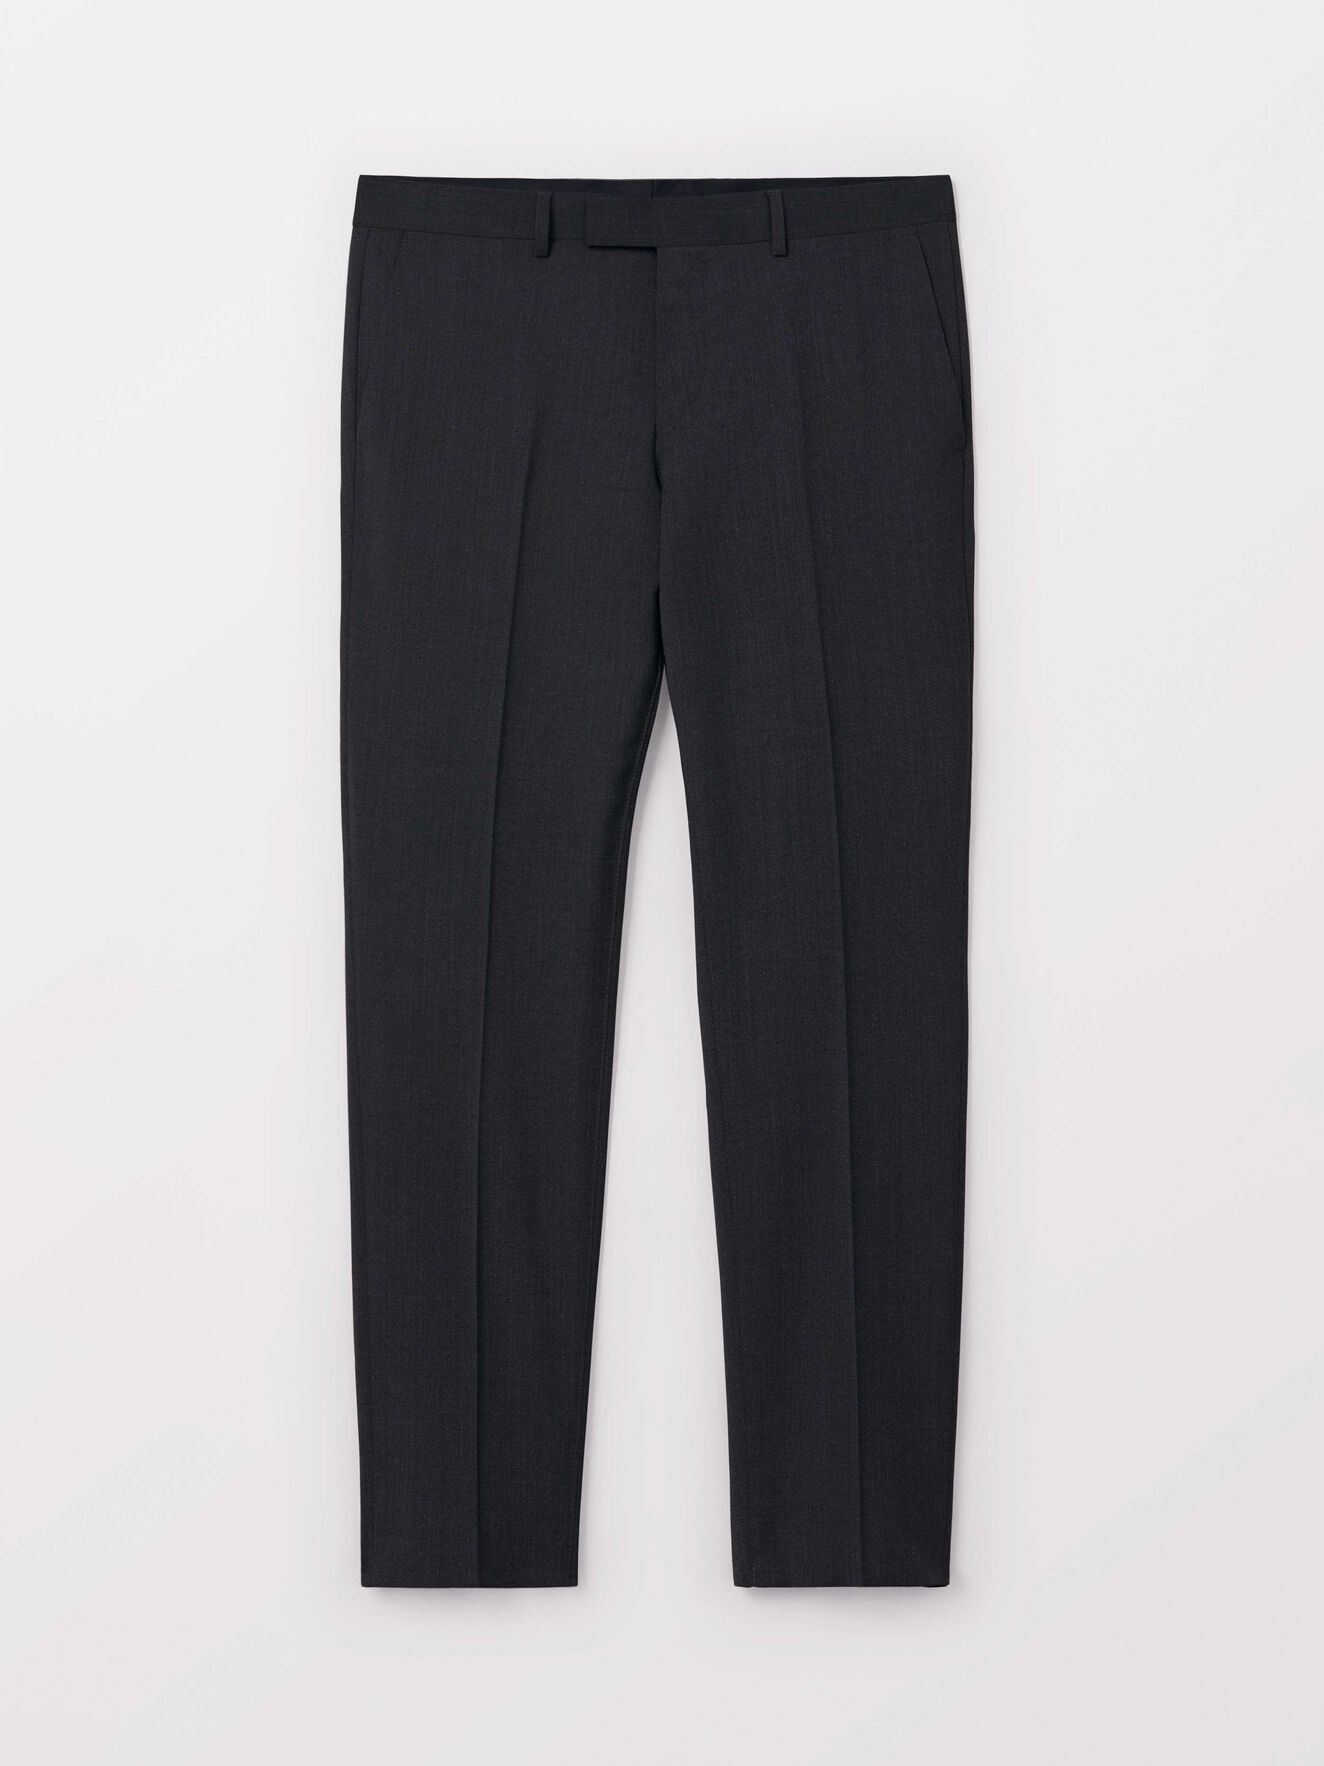 Tordon Trousers in Dark grey Mel from Tiger of Sweden